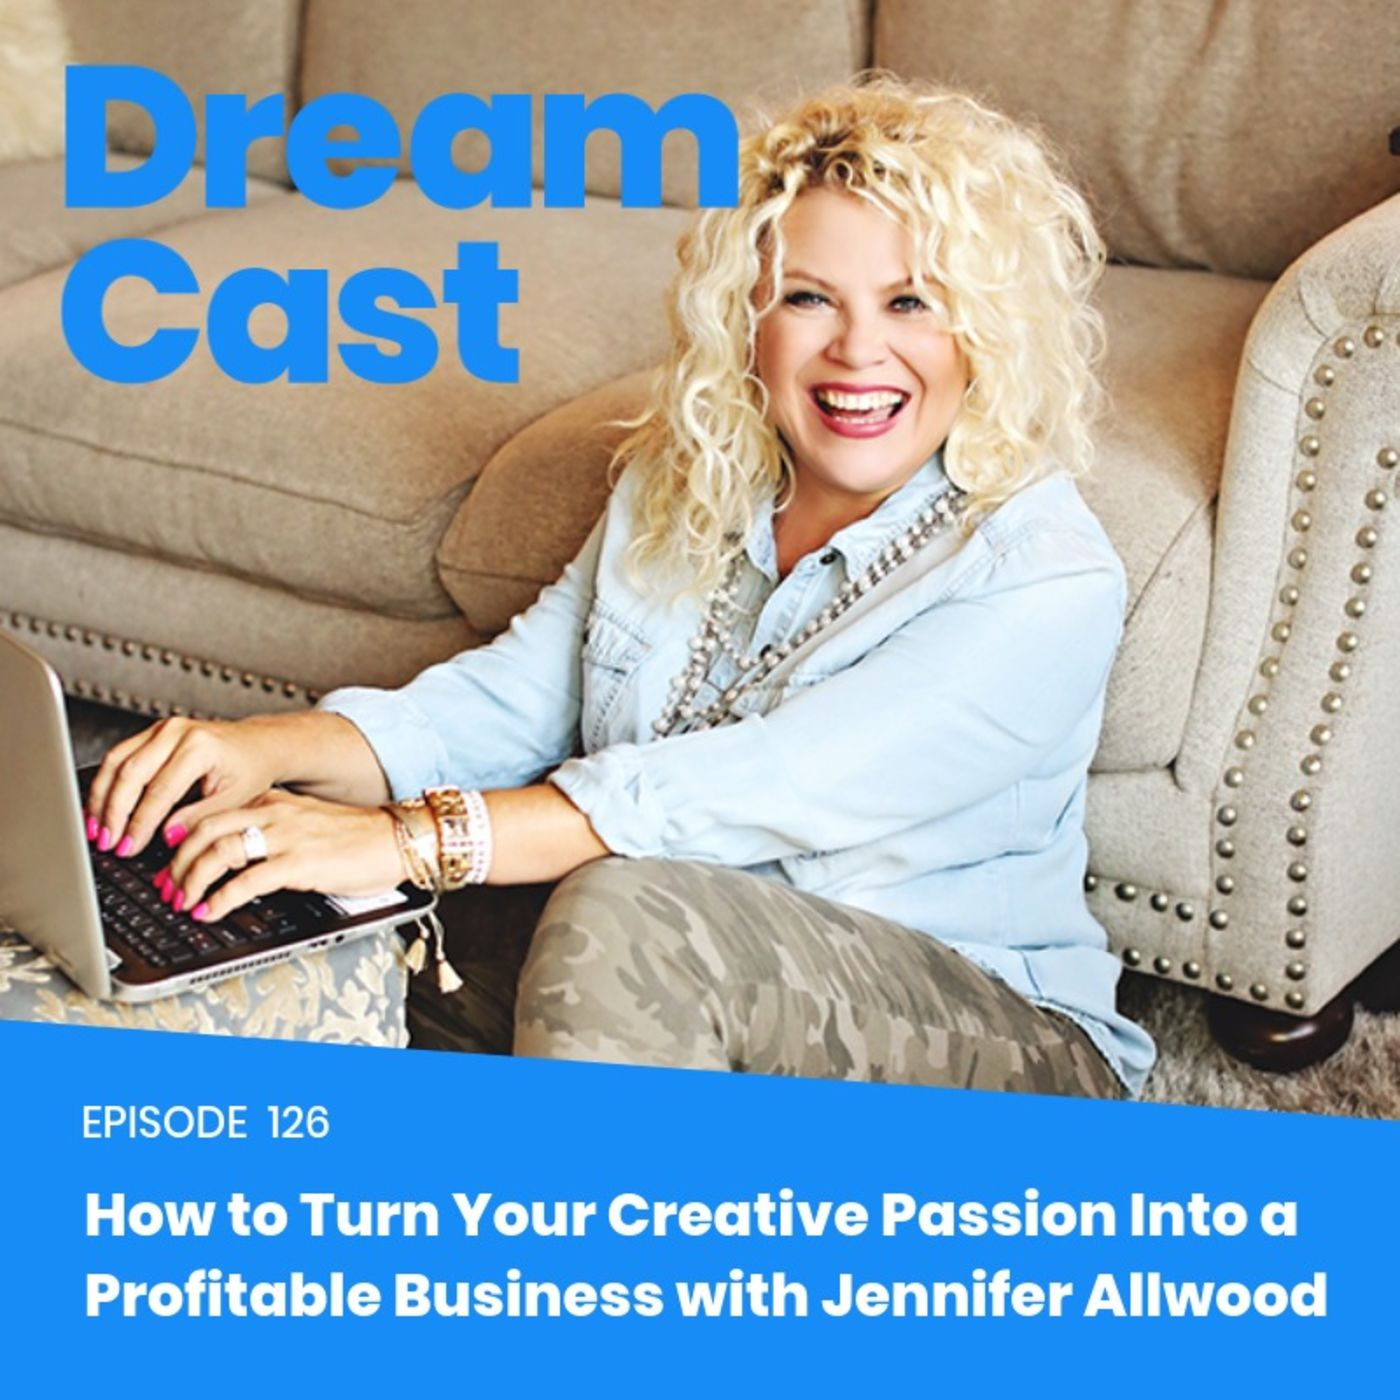 Episode 126 – How to Turn Your Creative Passion Into a Profitable Business